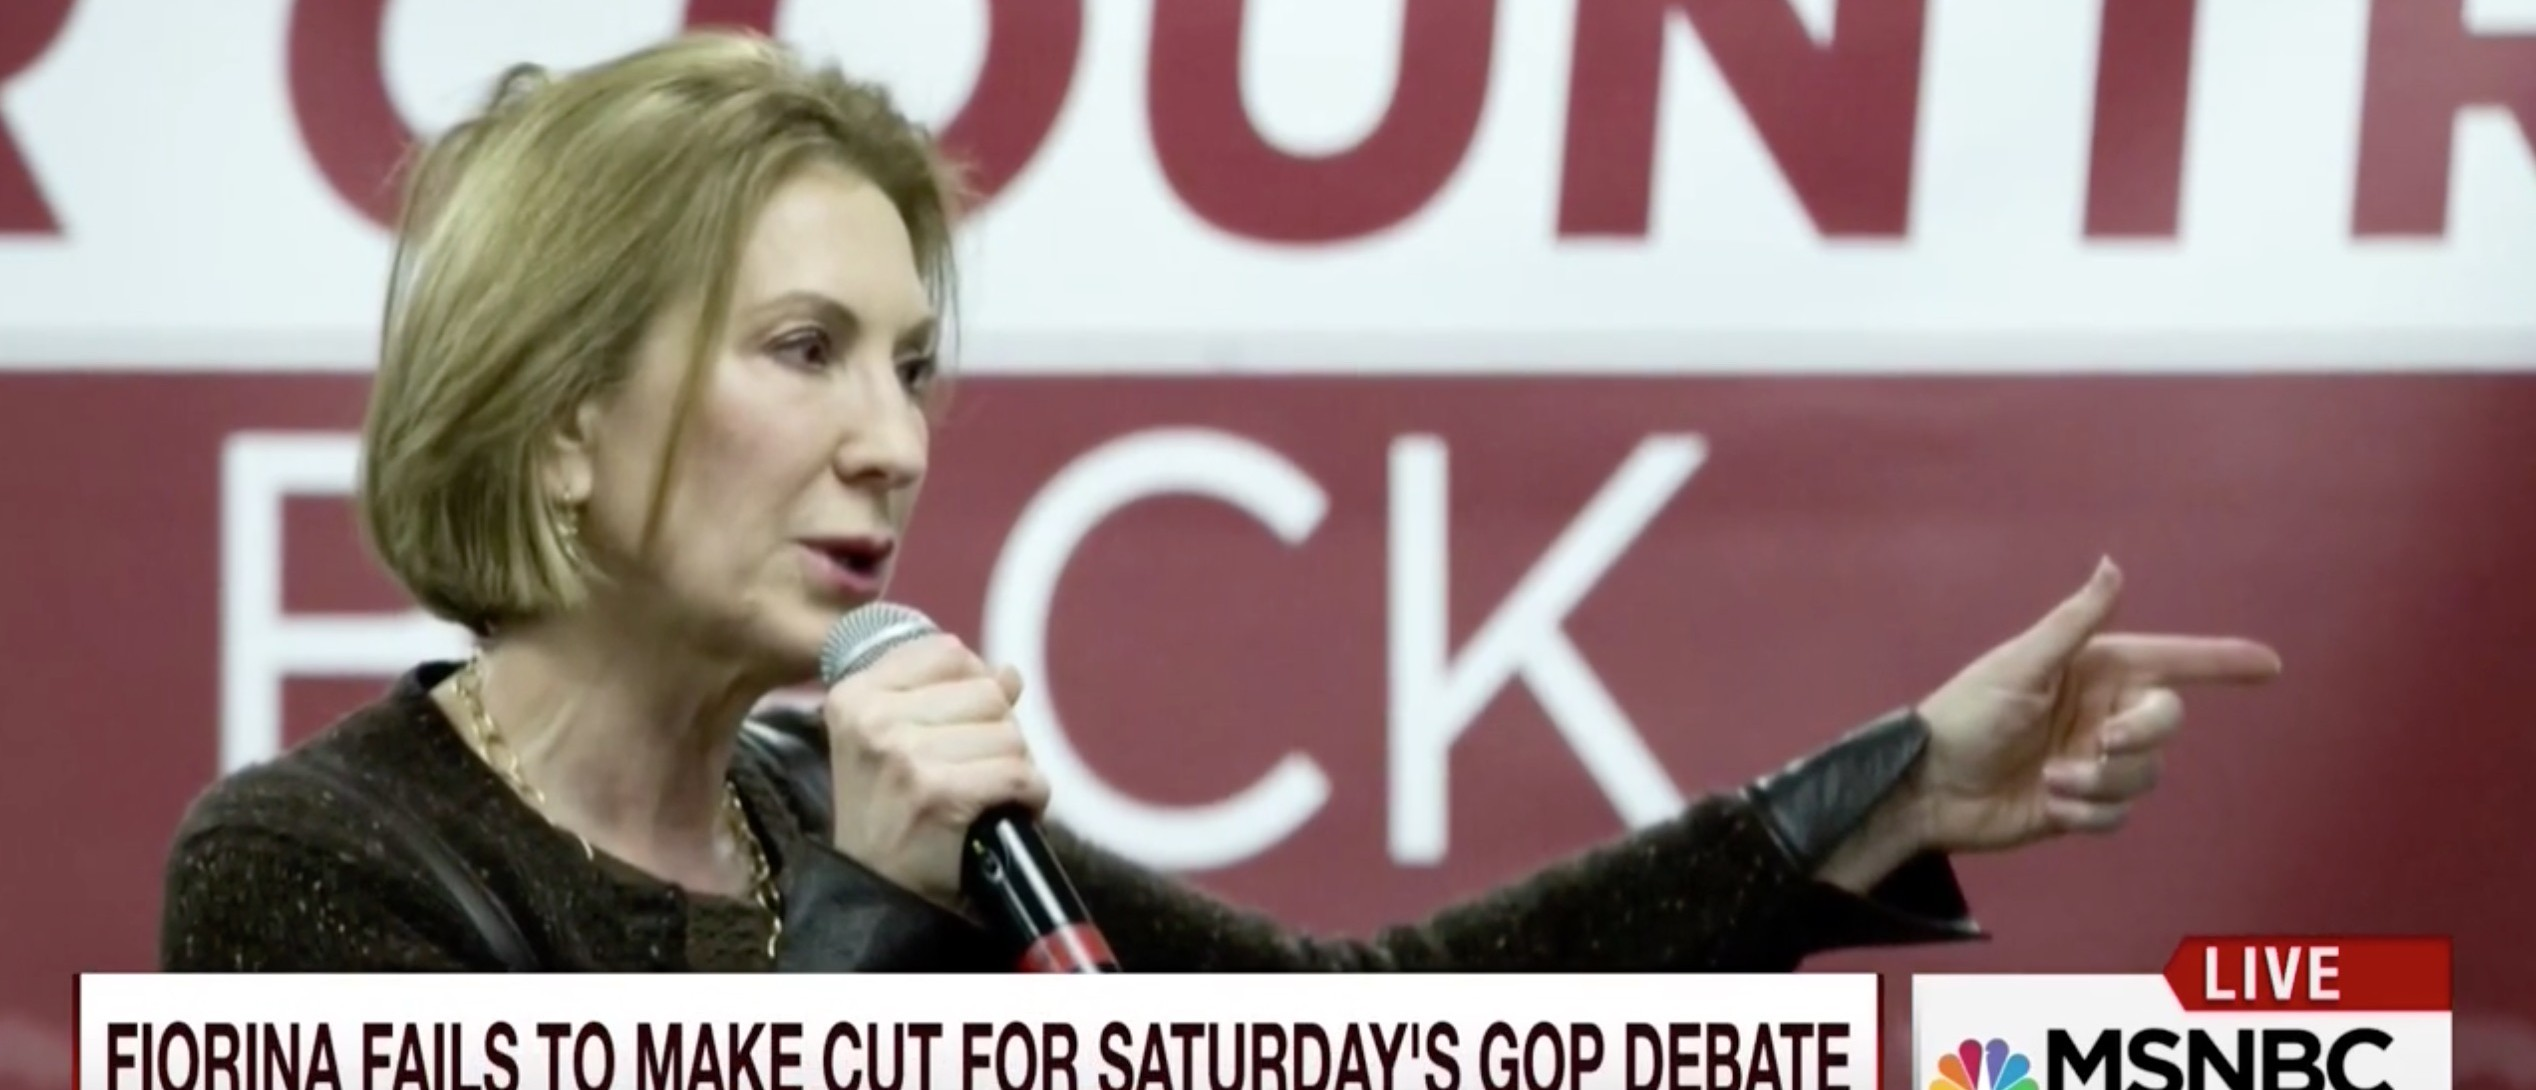 Fiorina On Not Making ABC Debate: 'The Game Is Rigged' [screen shot MSNBC]